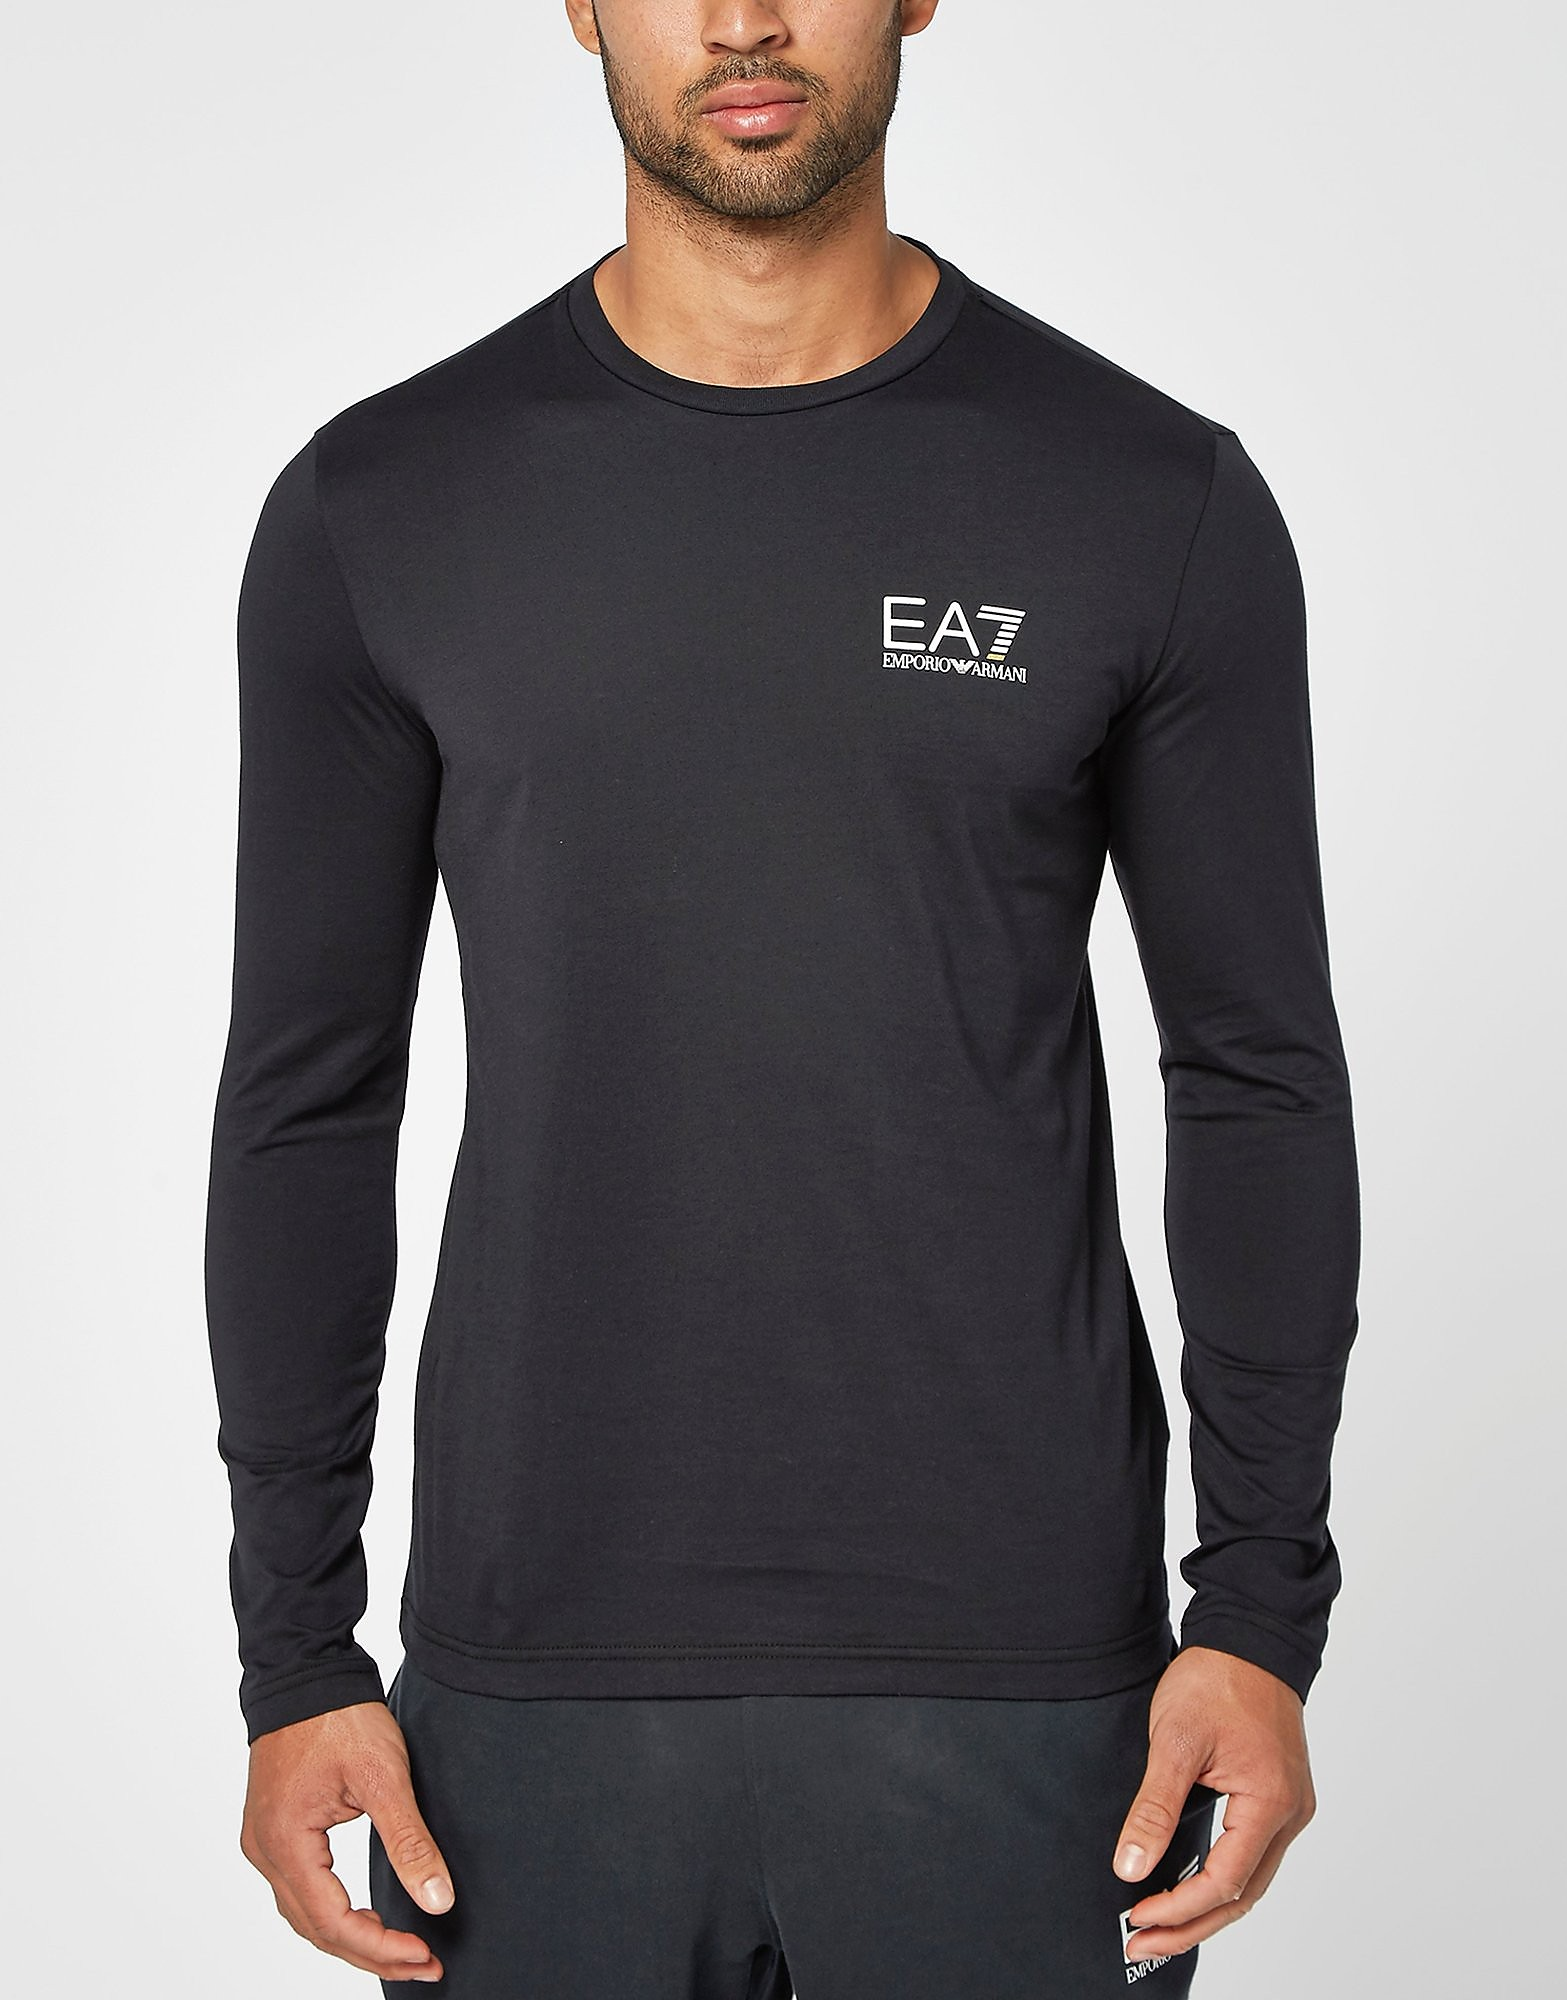 Emporio Armani EA7 Core Long Sleeved T-Shirt